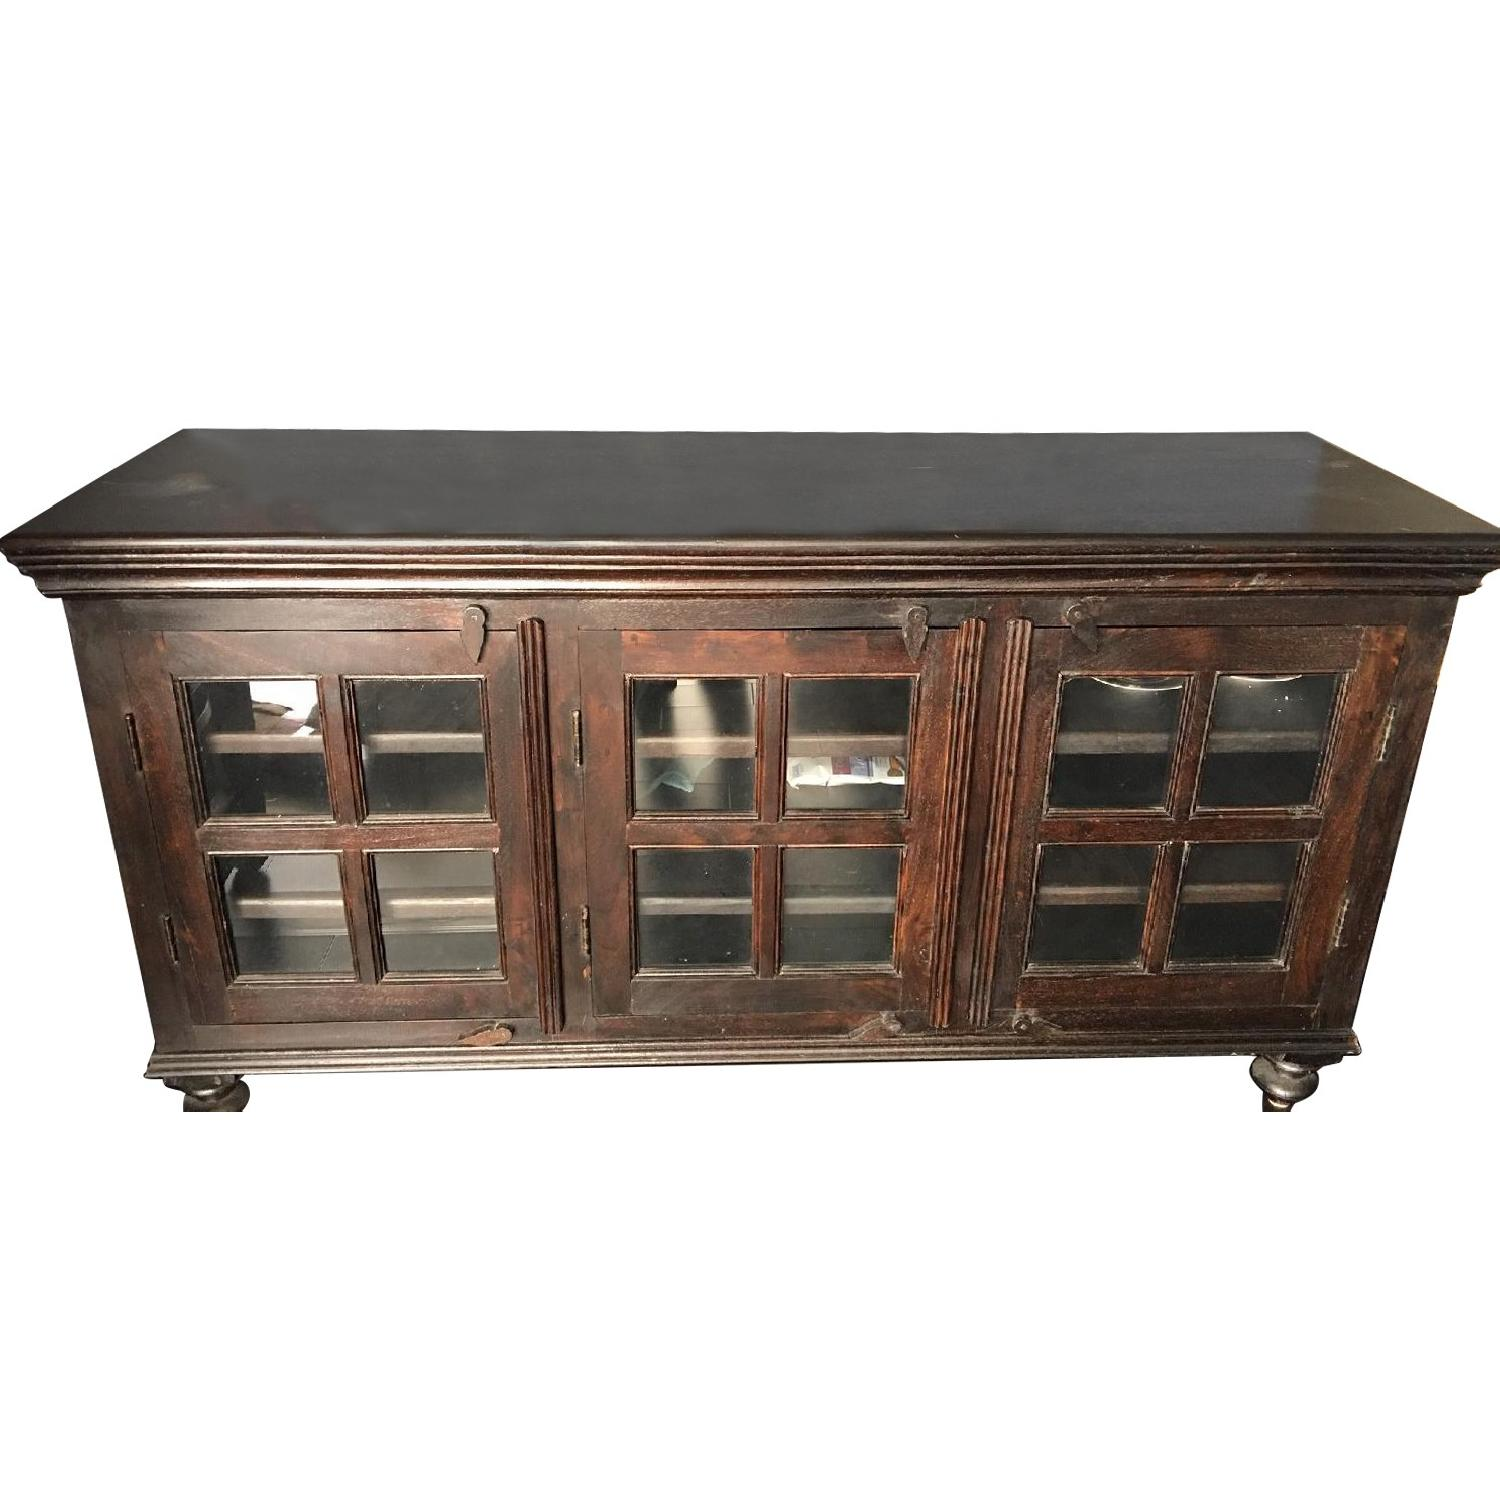 Crate & Barrel Chocolate Brown Credenza